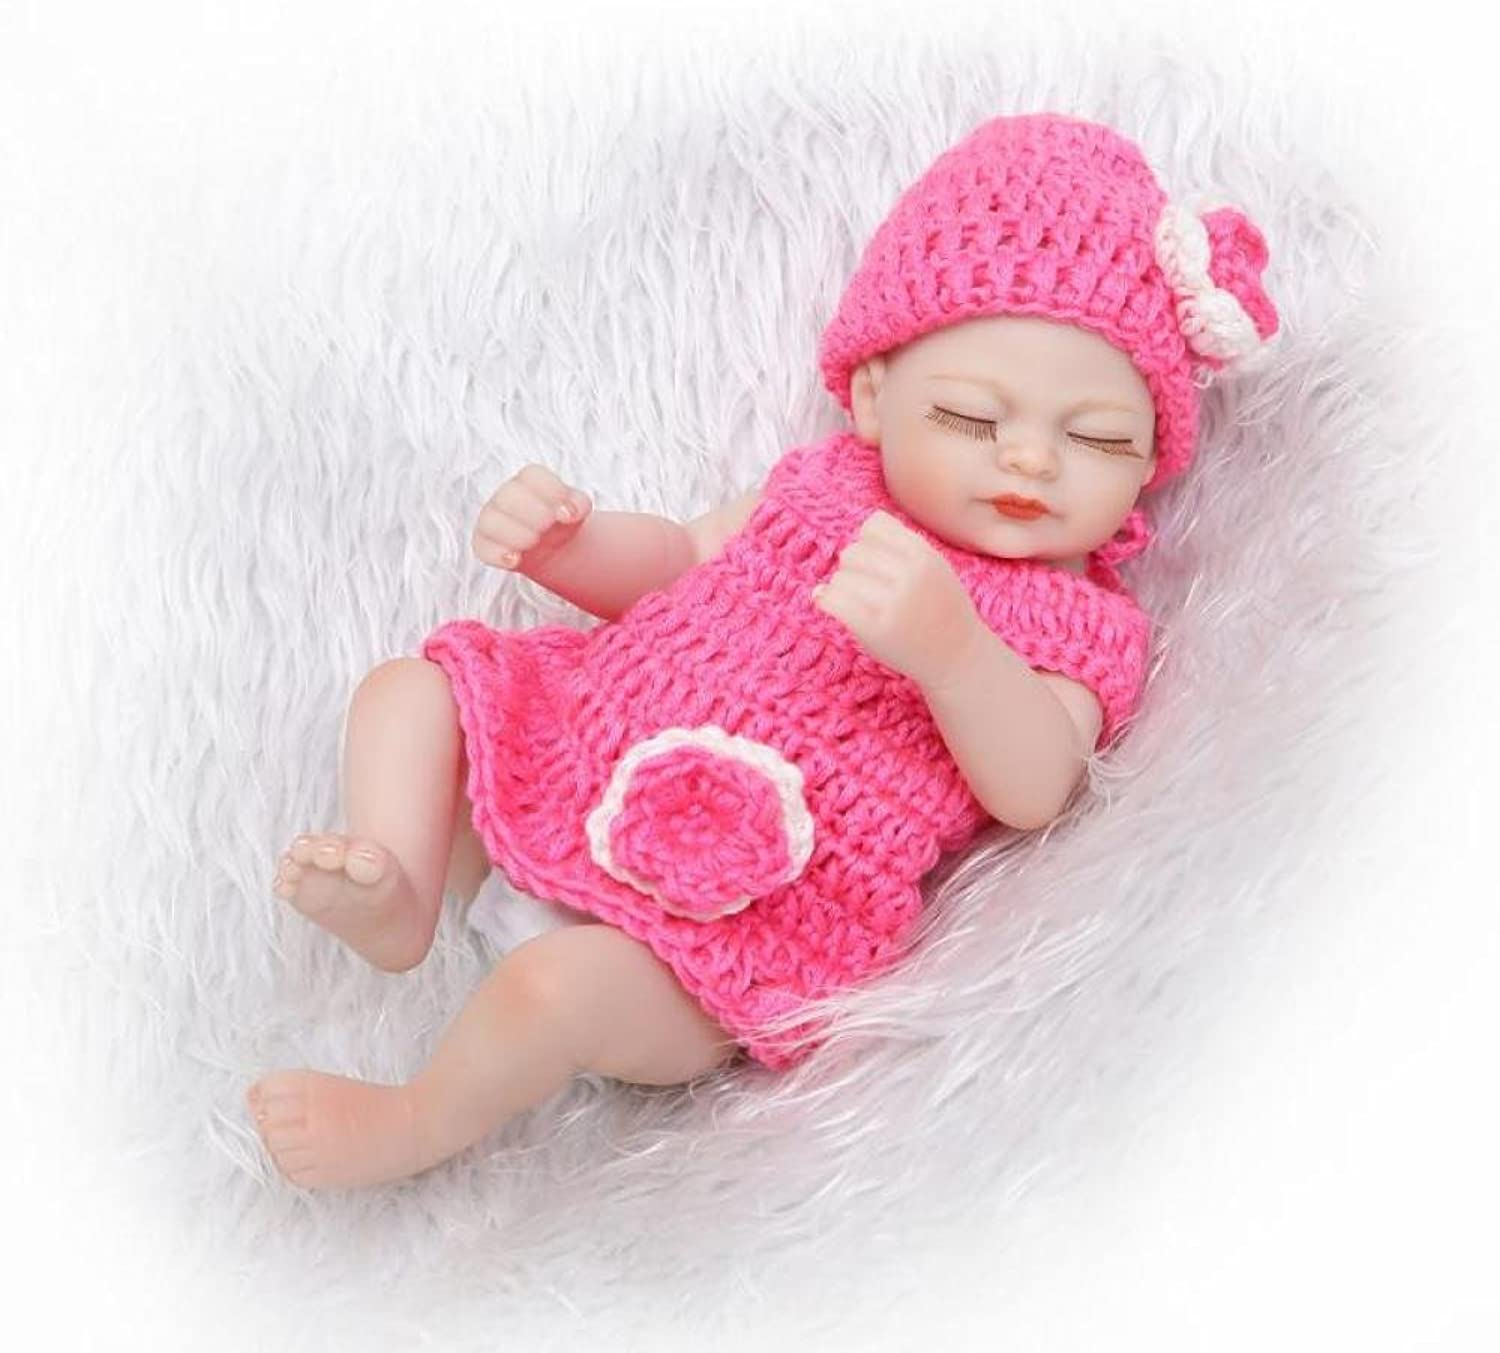 Baby Rebirth Doll Silicone 10 inch 26cm Waterproof Toy Sweater Girl Reborn Baby Doll